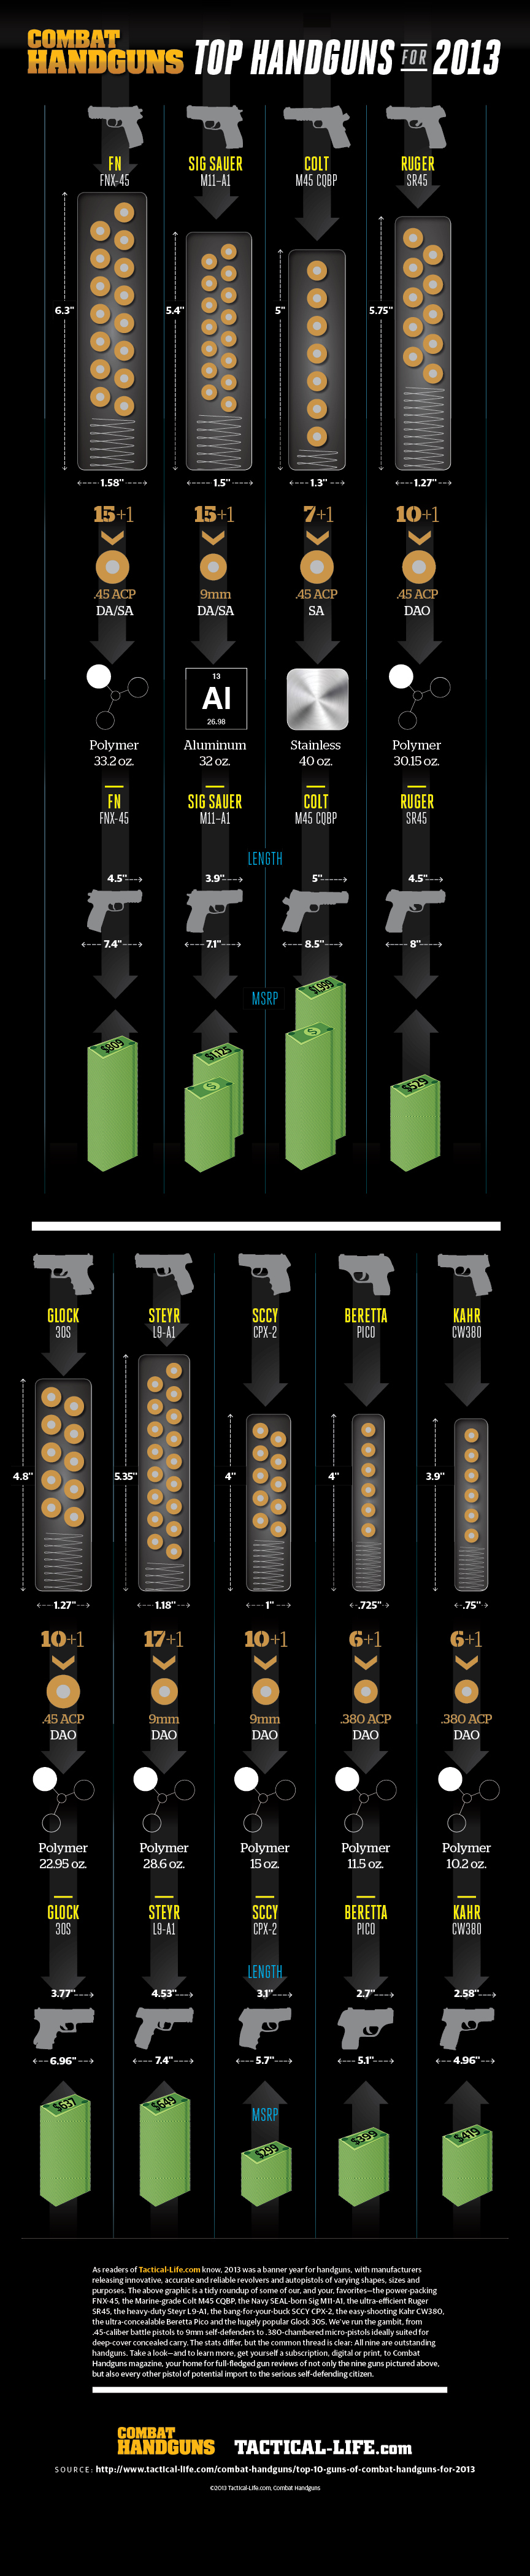 Combat Handguns Top Handguns of 2013 Infographic